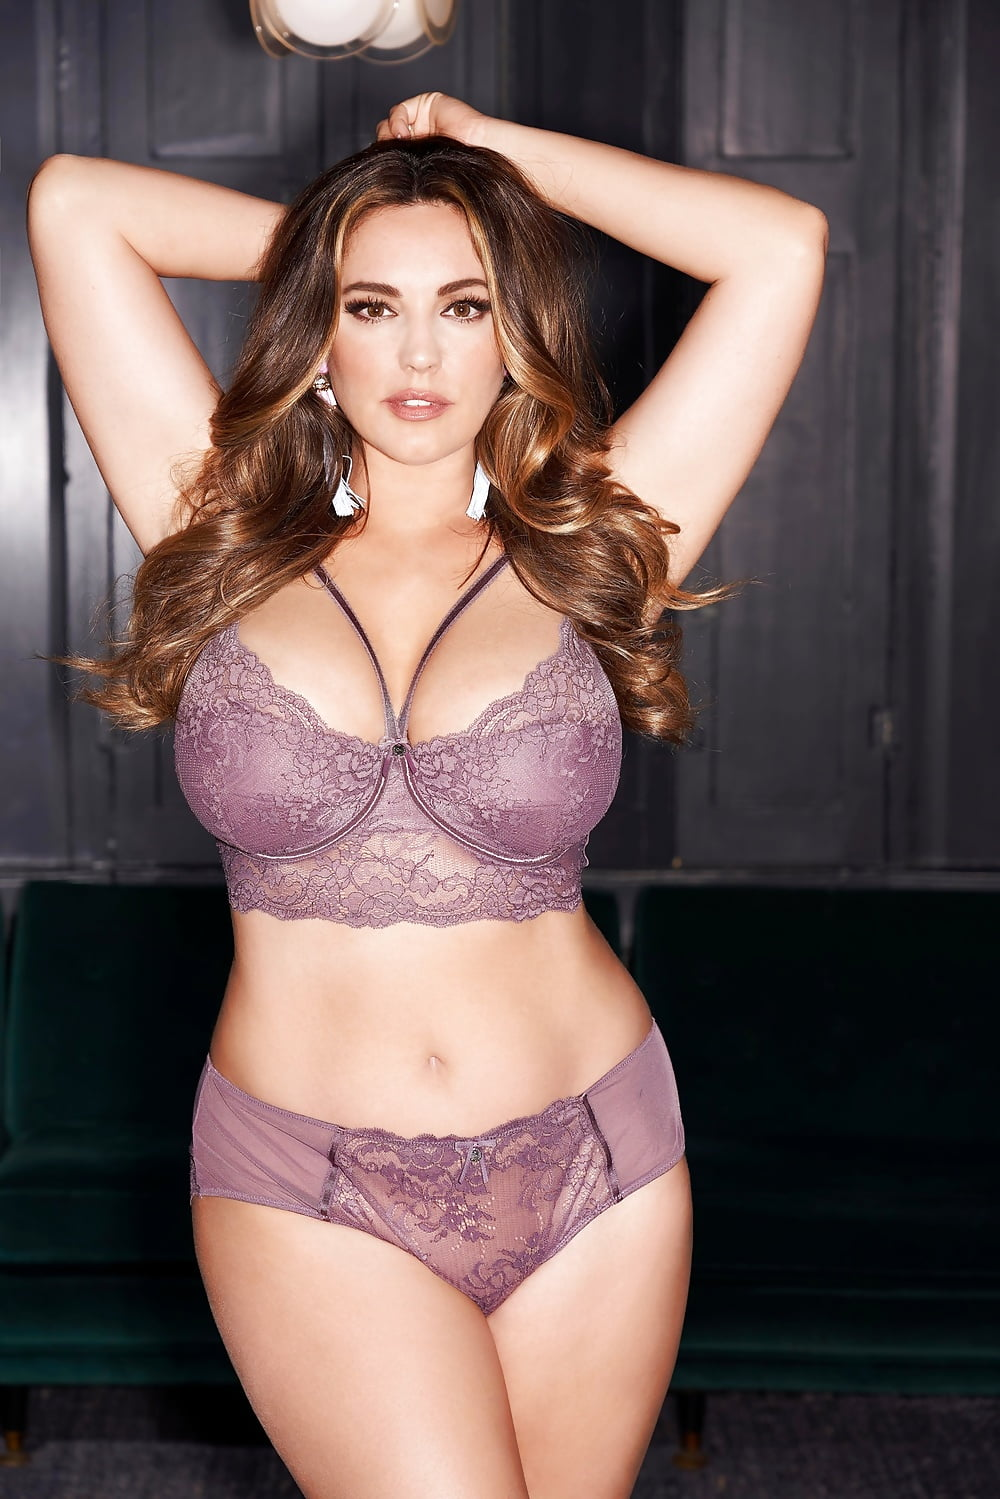 Kelly brook bikini photos